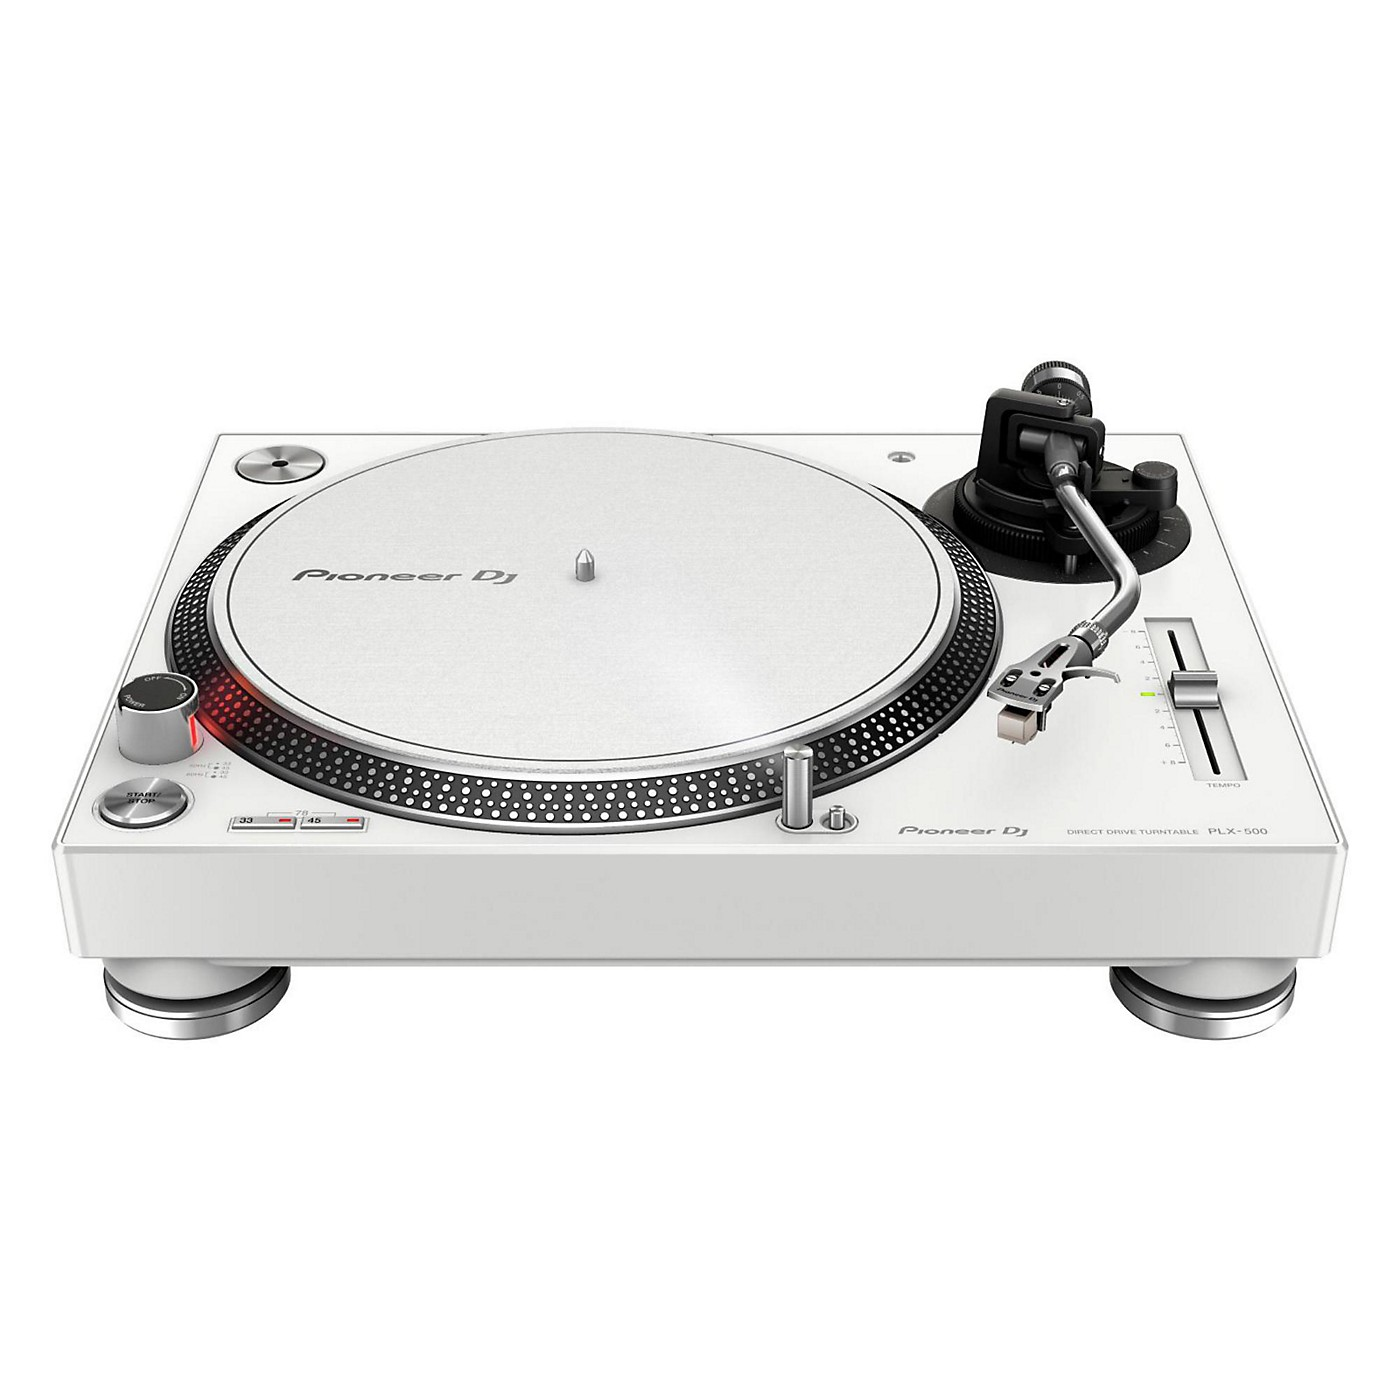 Pioneer PLX-500 Direct-Drive Professional Turntable White thumbnail